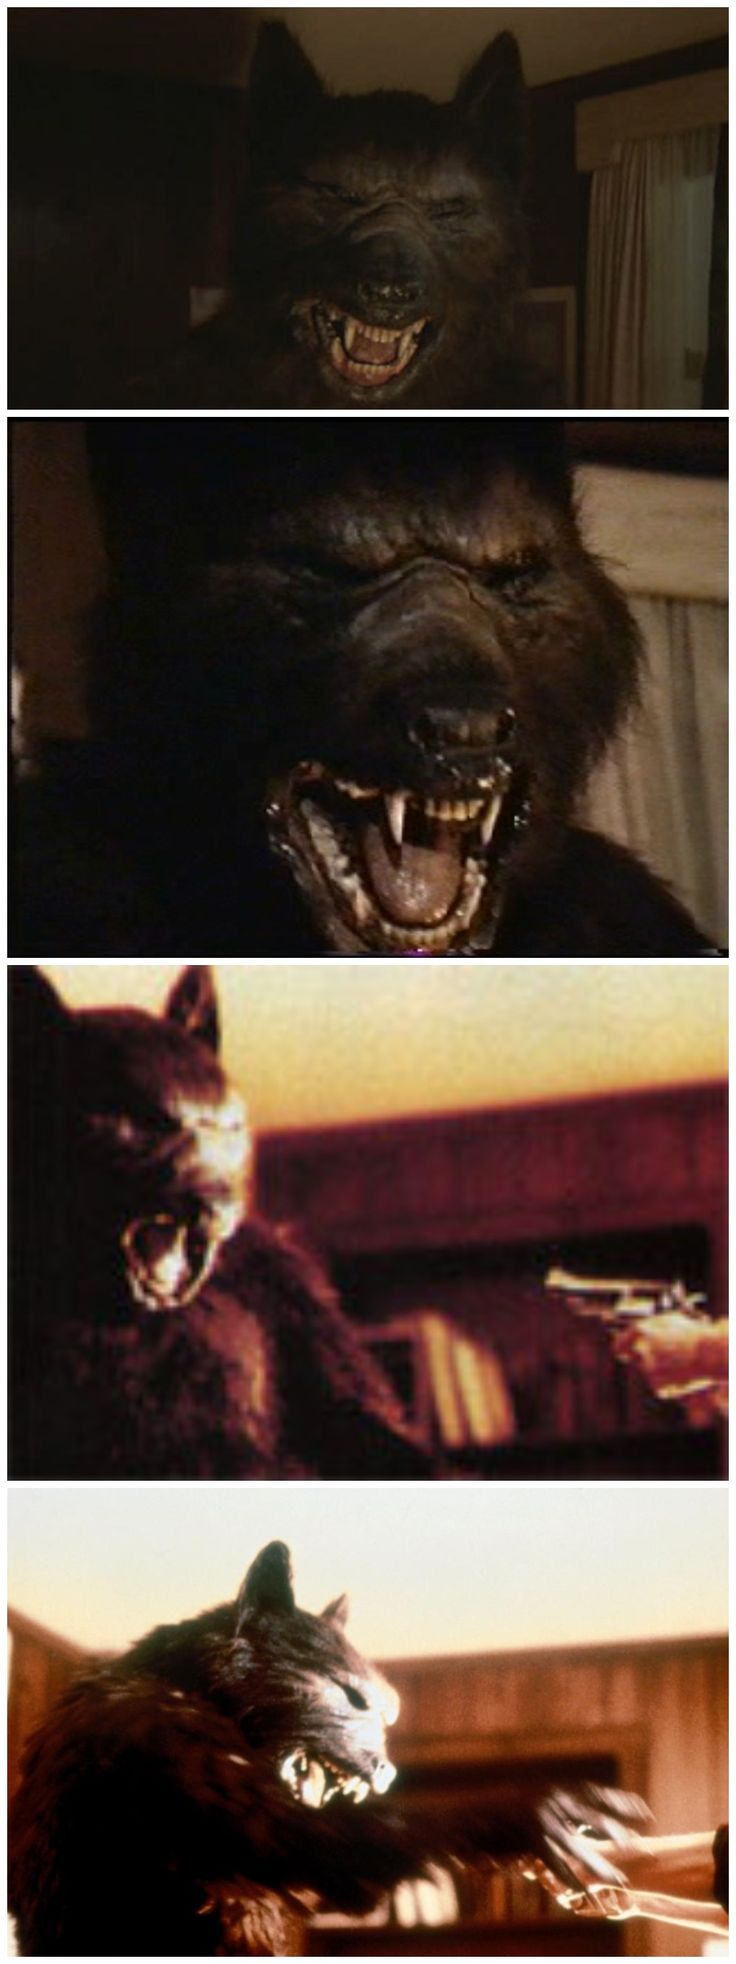 Silver Bullet Werewolf, Omg I remember my parents watching this movie when I was a kid and me and my sister saw weren't allowed but we snuck out of our rooms and caught a peak anyway. It was on this scene. Gave me nightmares lol!